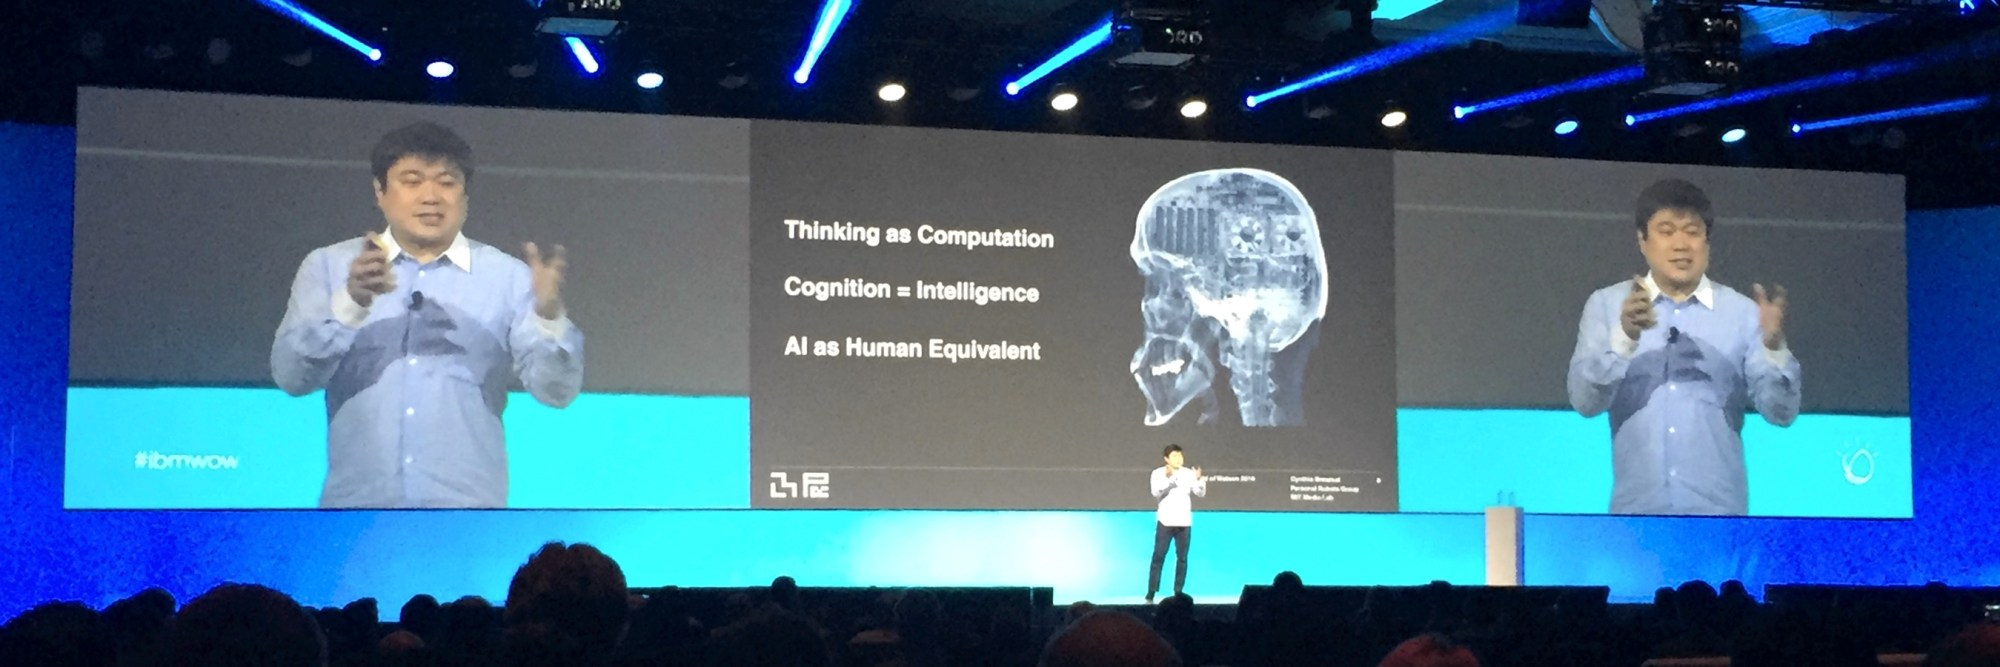 IIUG What is Cognitive by Joi Ito